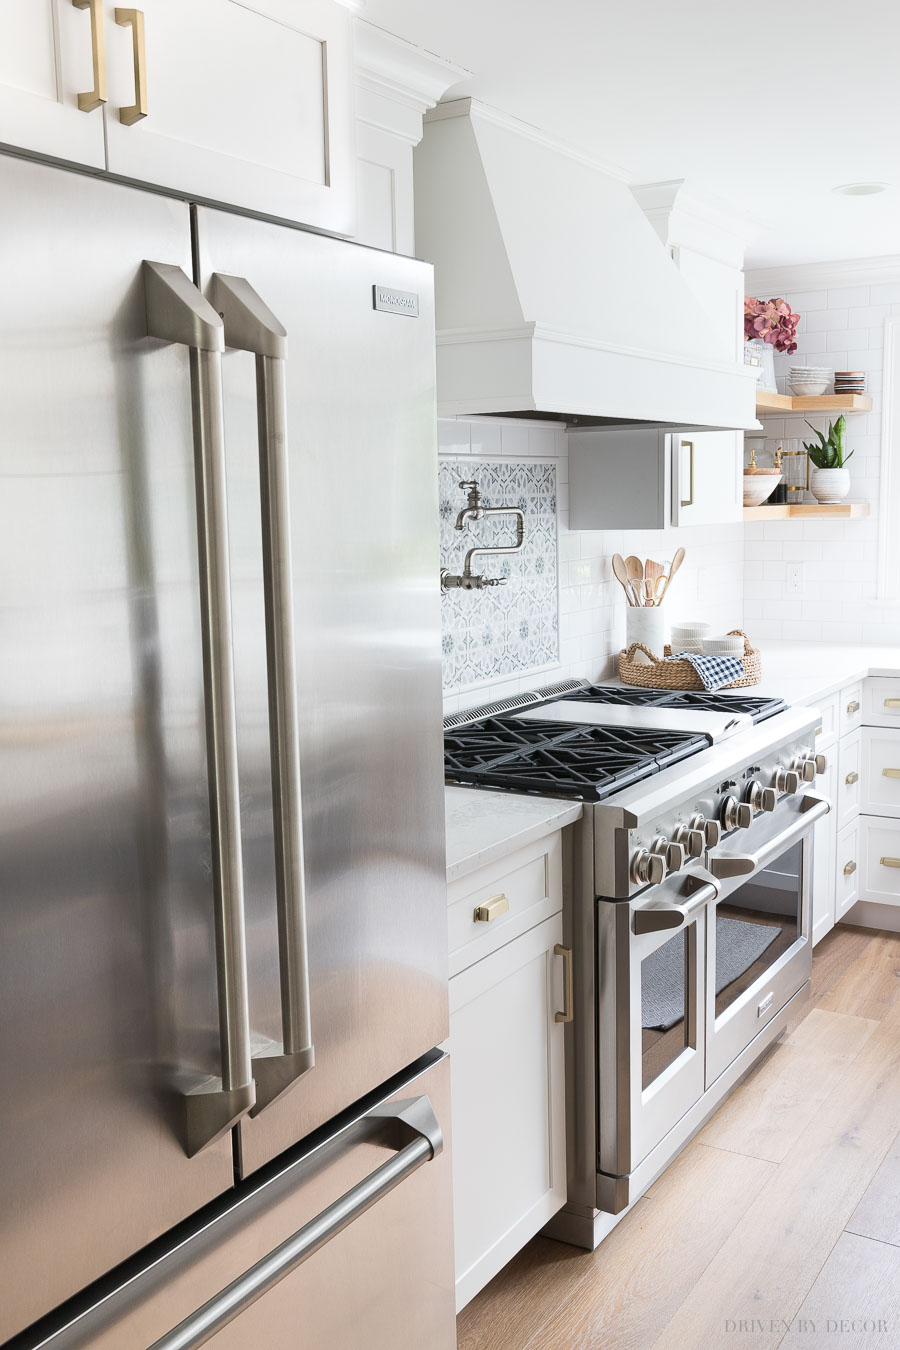 Gorgeous Monogram appliances (love the handles)! Lots of details on favorite features in this post!